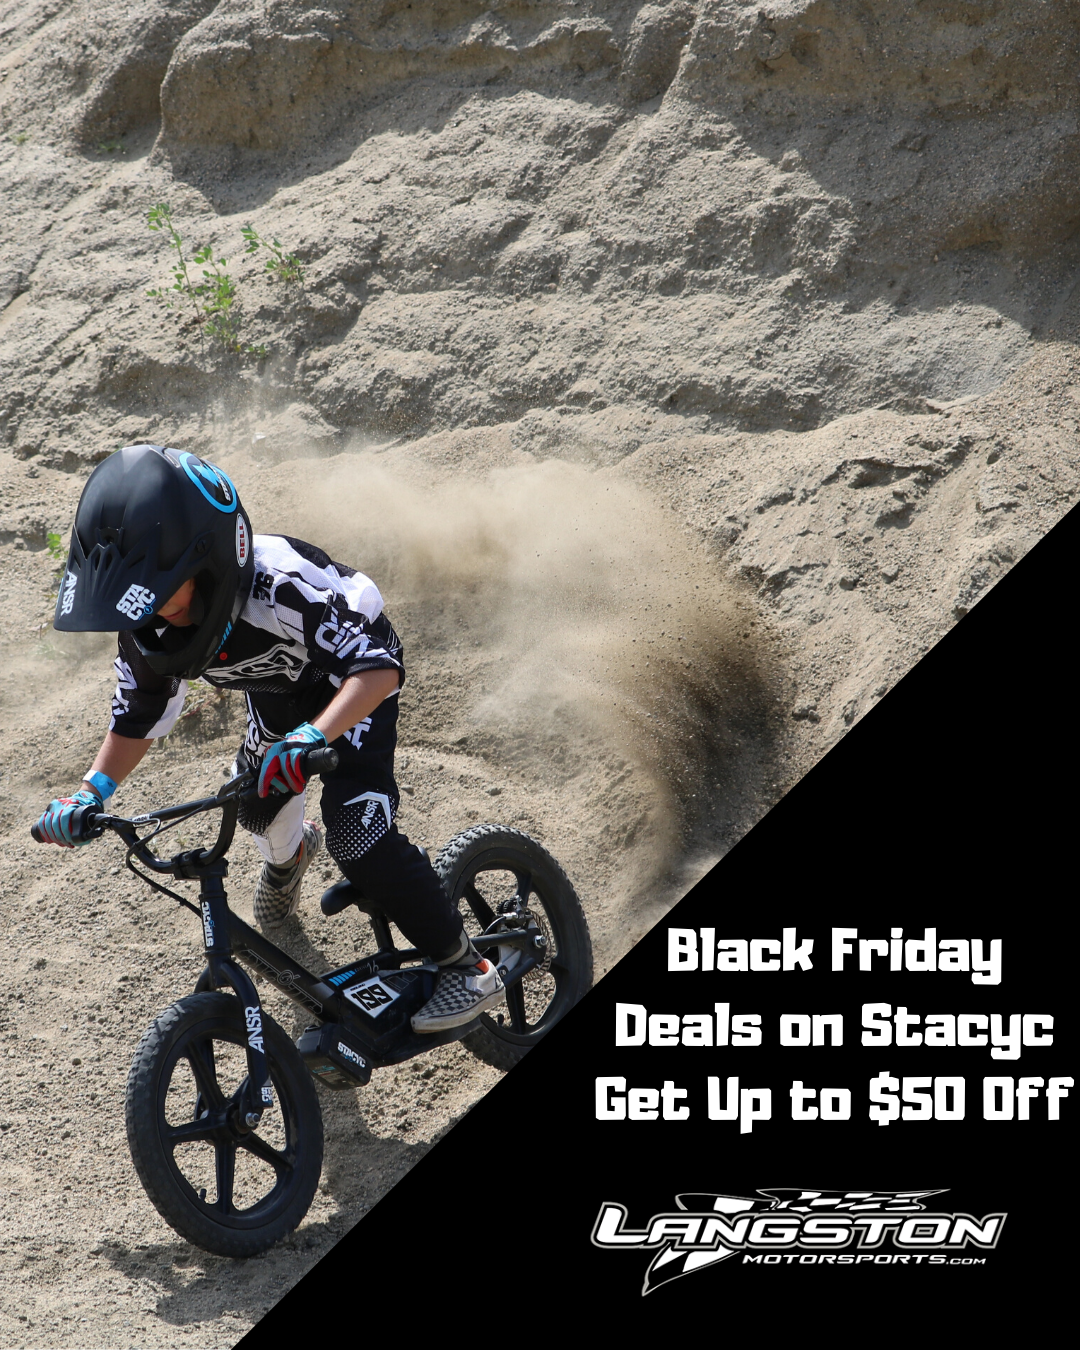 Up To 50 Off On Stacyc Balance Bikes Black Friday Sale From Nov 29 Dec 1 Come On In And Get Yours Langstonmotorspor Balance Bike Motorsport Black Friday